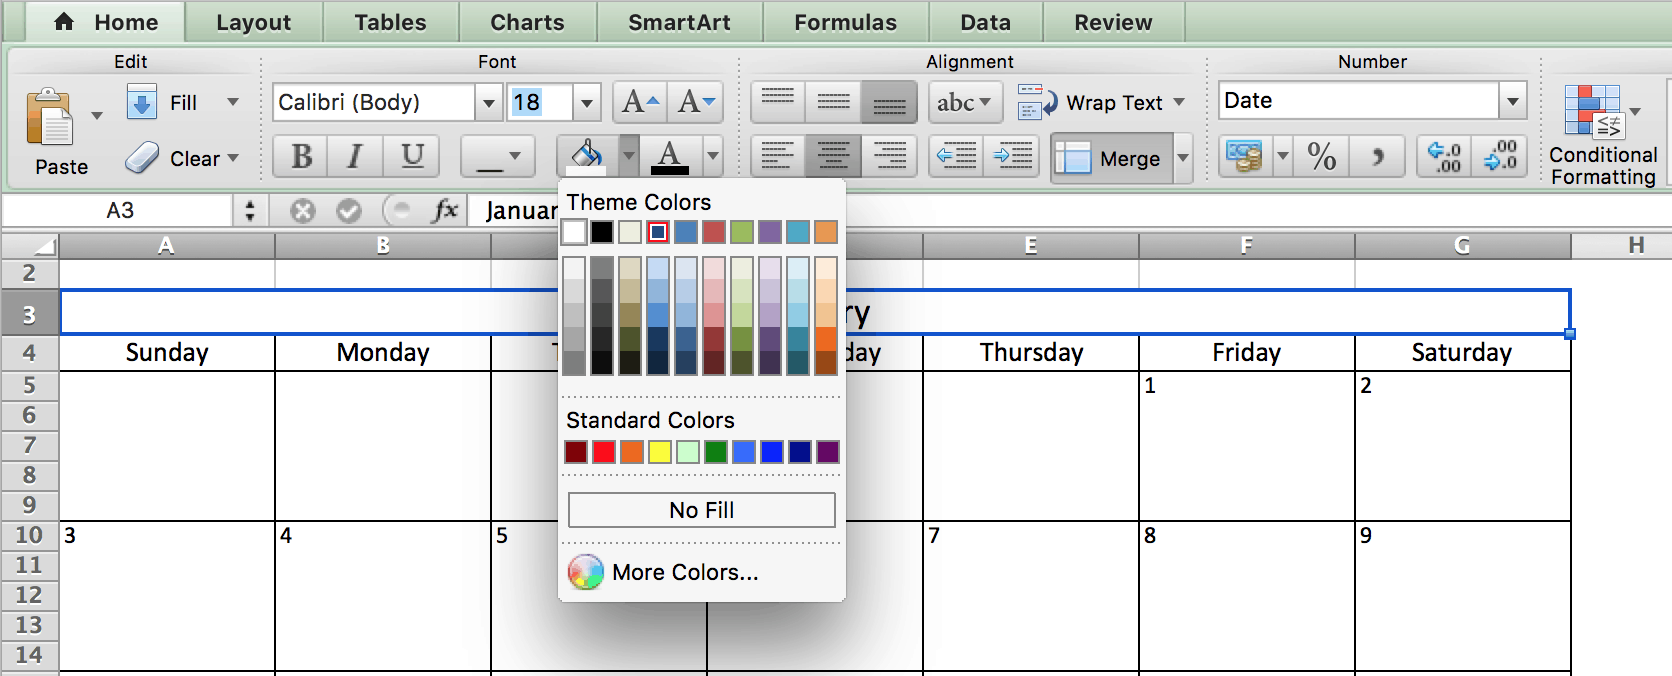 Ediblewildsus  Wonderful Make A  Calendar In Excel Includes Free Template With Extraordinary Choosing Colors  Calendar In Excel With Amusing Excel Forms Download Also Microsoft Excel Temp Files In Addition Debt Stacking Excel Spreadsheet And Random Pick In Excel As Well As Plotting Bar Graphs In Excel Additionally Scatter Chart Excel Multiple Series From Smartsheetcom With Ediblewildsus  Extraordinary Make A  Calendar In Excel Includes Free Template With Amusing Choosing Colors  Calendar In Excel And Wonderful Excel Forms Download Also Microsoft Excel Temp Files In Addition Debt Stacking Excel Spreadsheet From Smartsheetcom